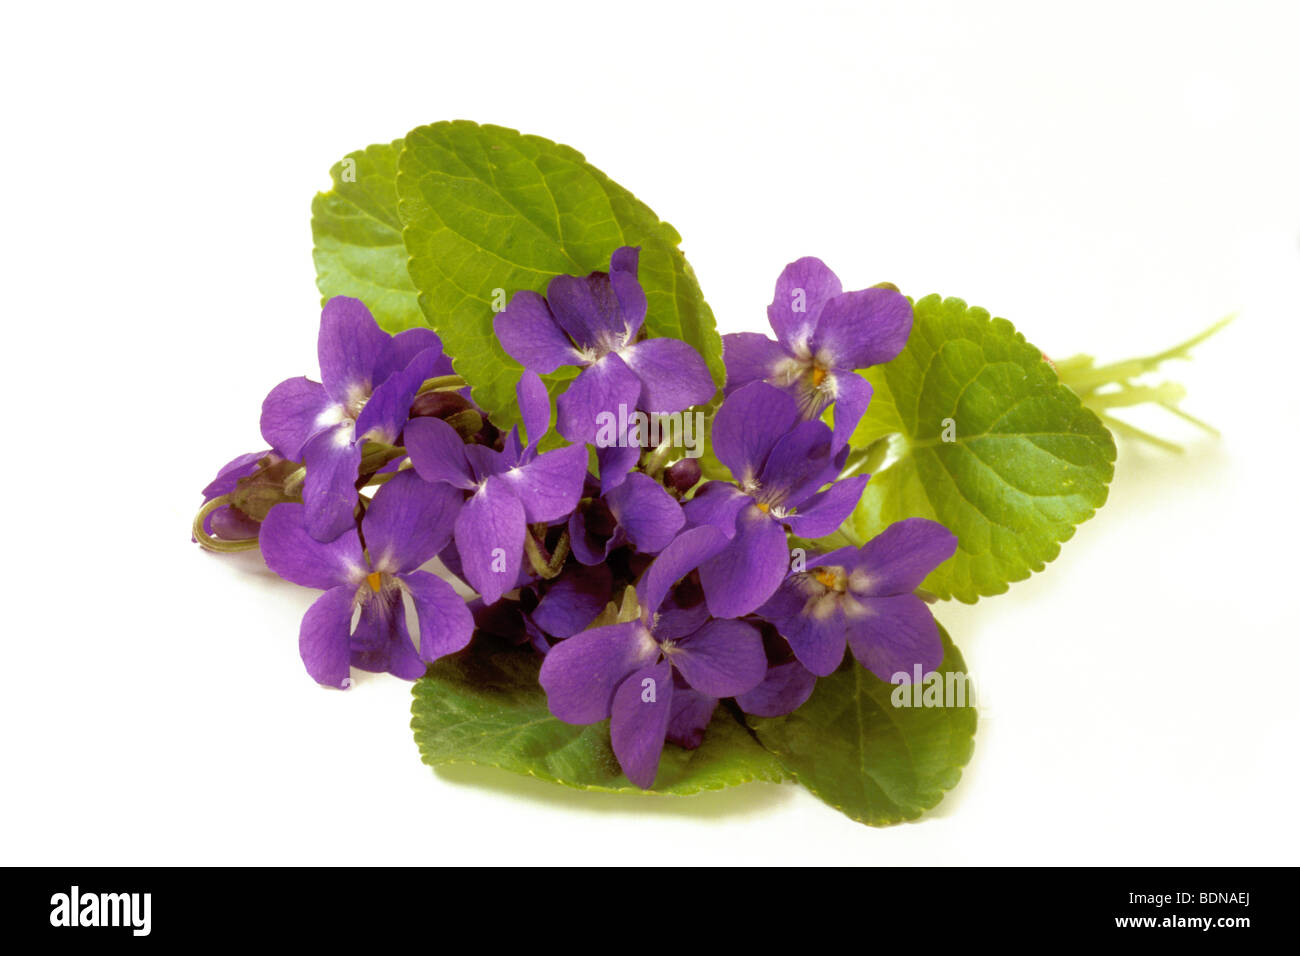 Sweet Violet (Viola odorata), bunch, bouquet, studio picture. - Stock Image